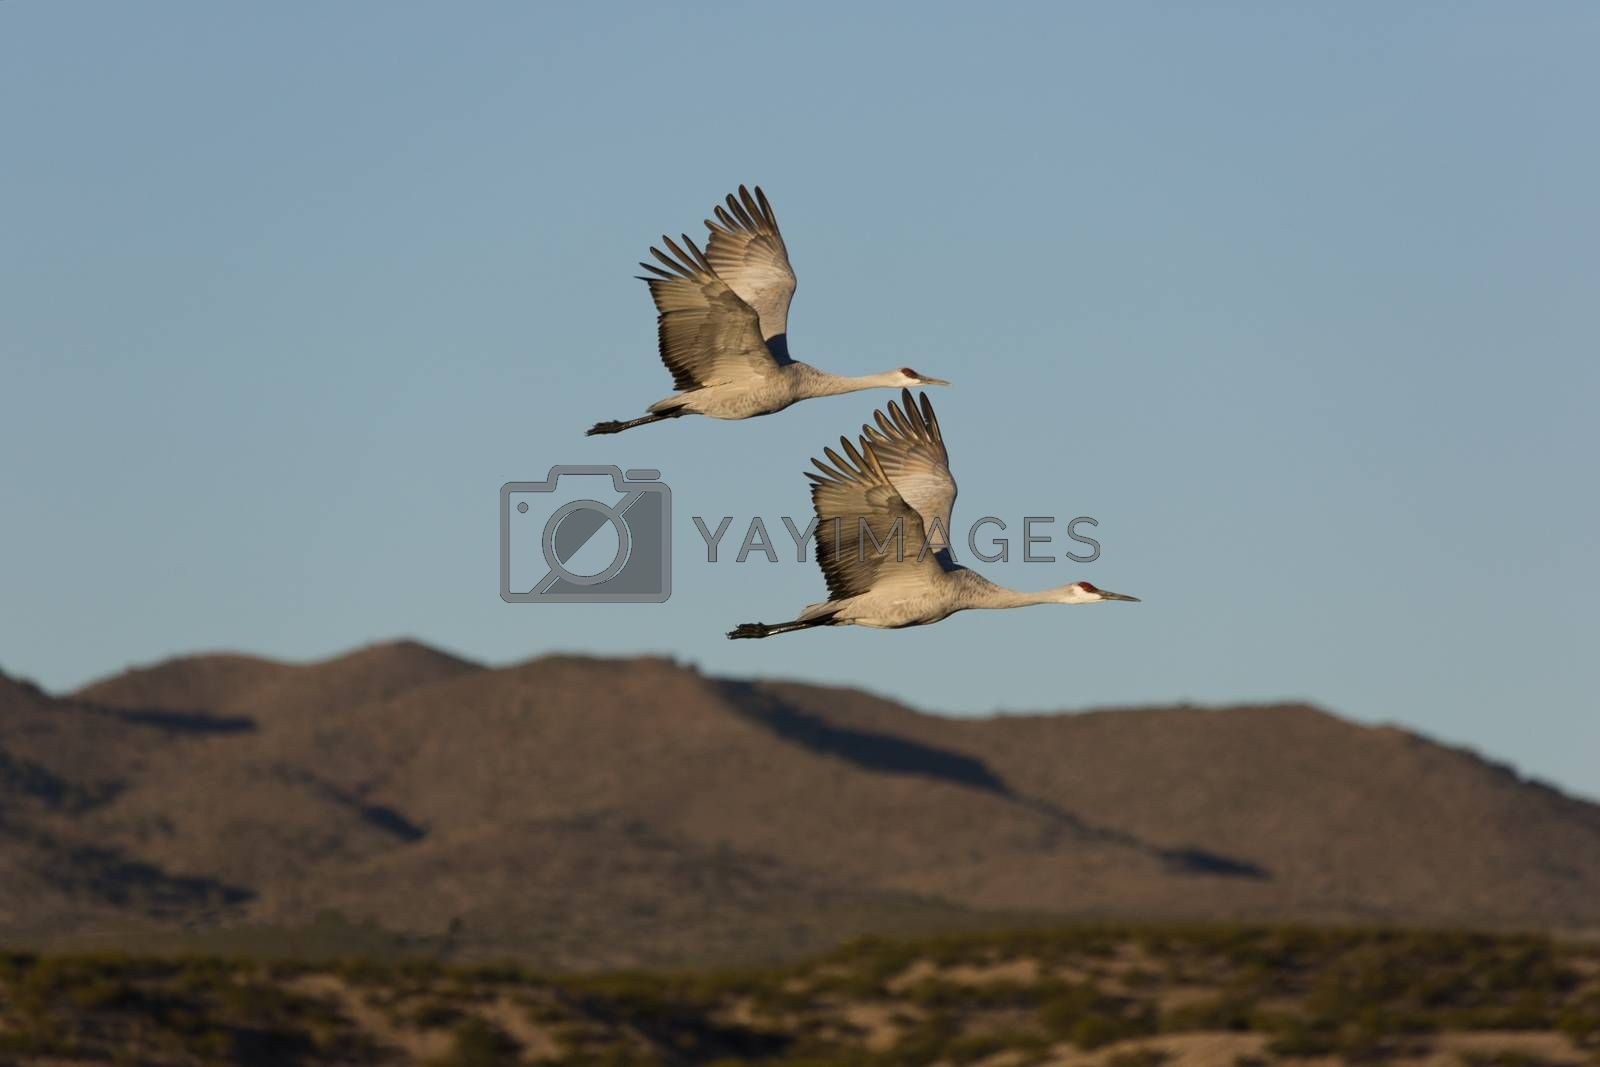 Pair of wild sandhill cranes fly together against rugged New Mexico's Chupadera Mountains.